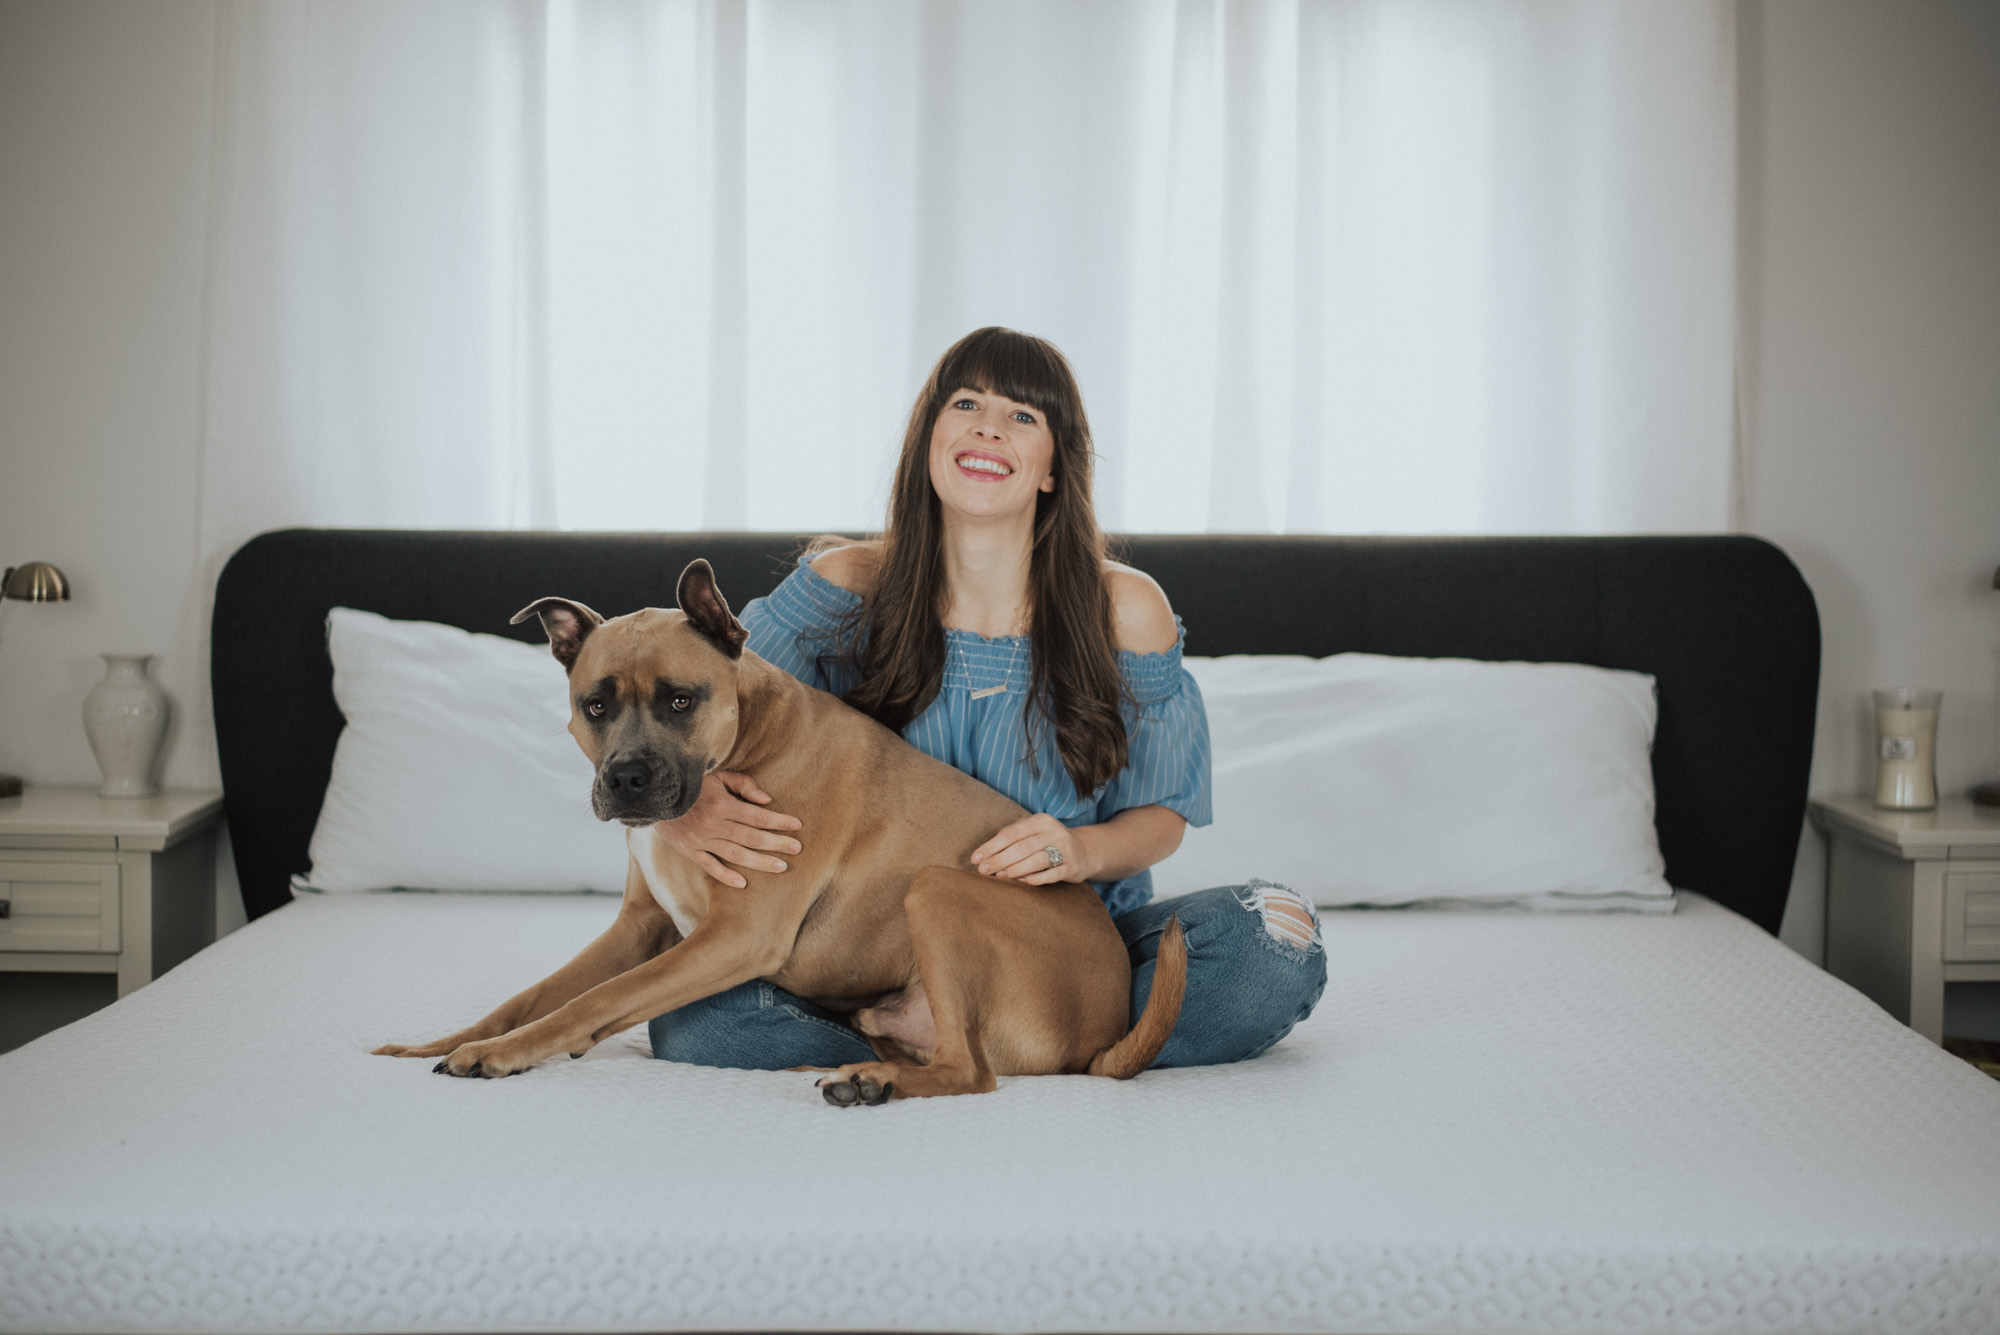 Wild Rosebuds | An Initial Review of the Endy Mattress